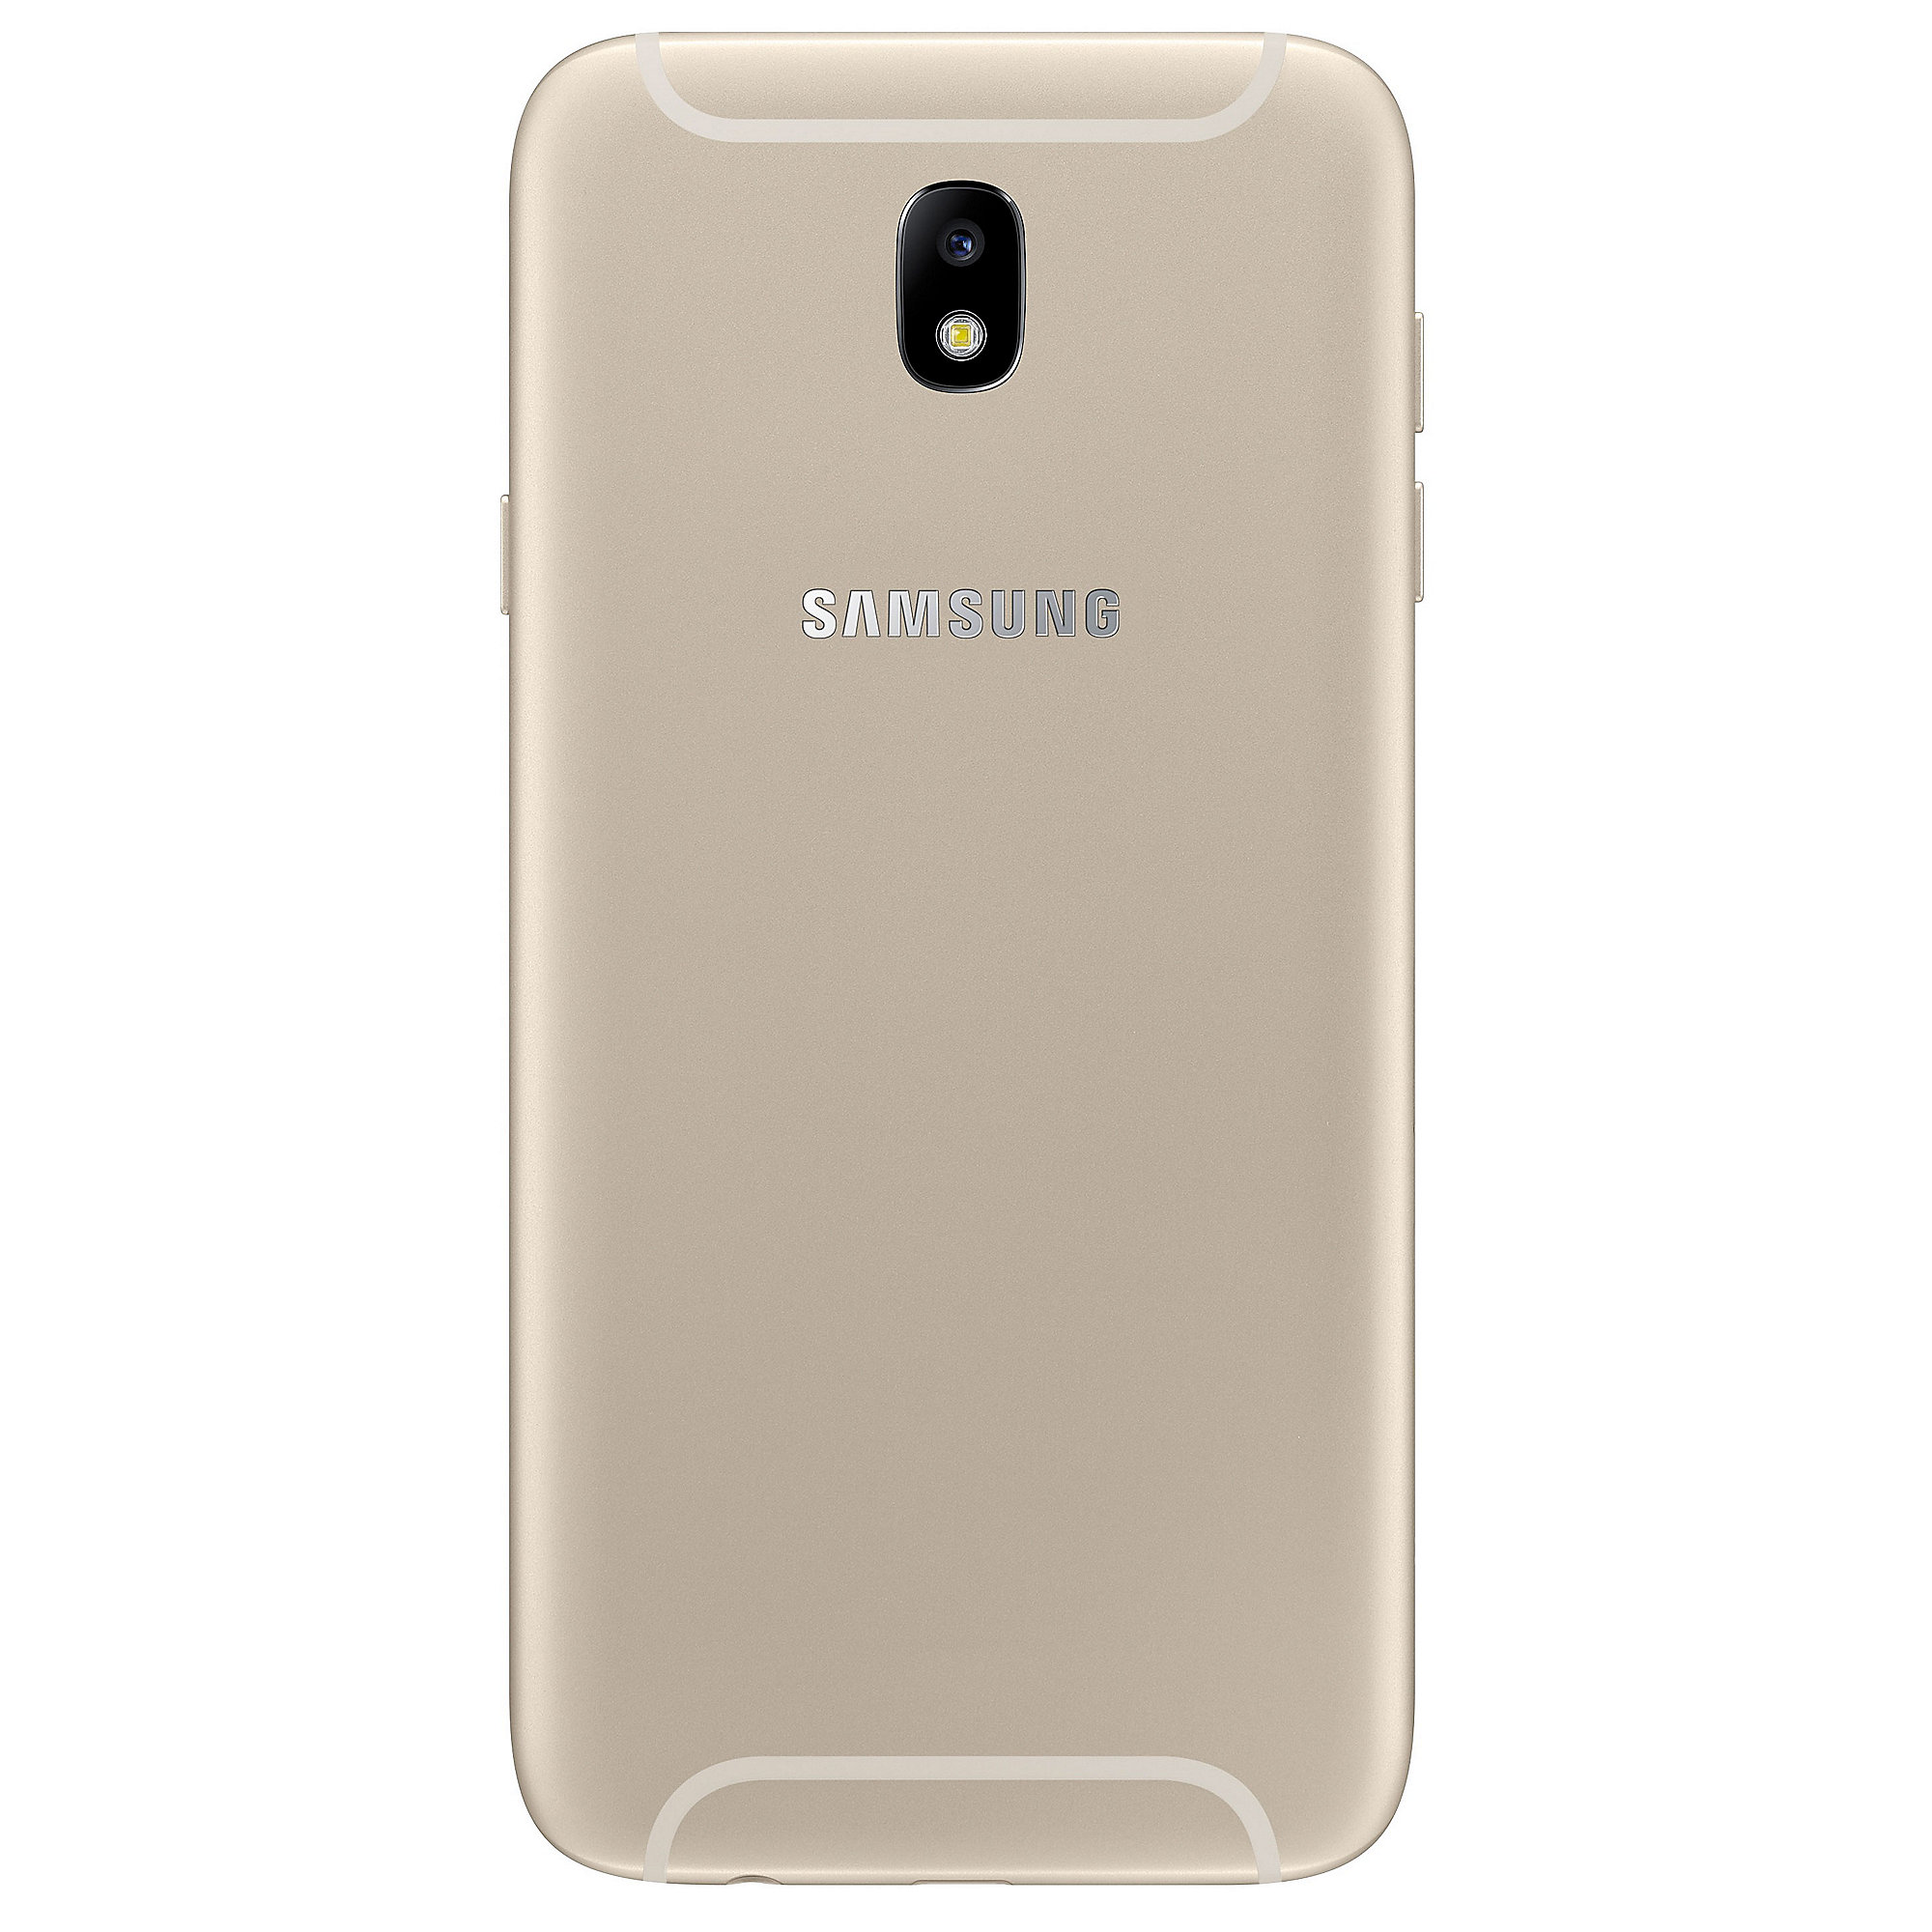 Samsung Galaxy J7 (2017) Duos J730FD gold Android 7.0 Smartphone